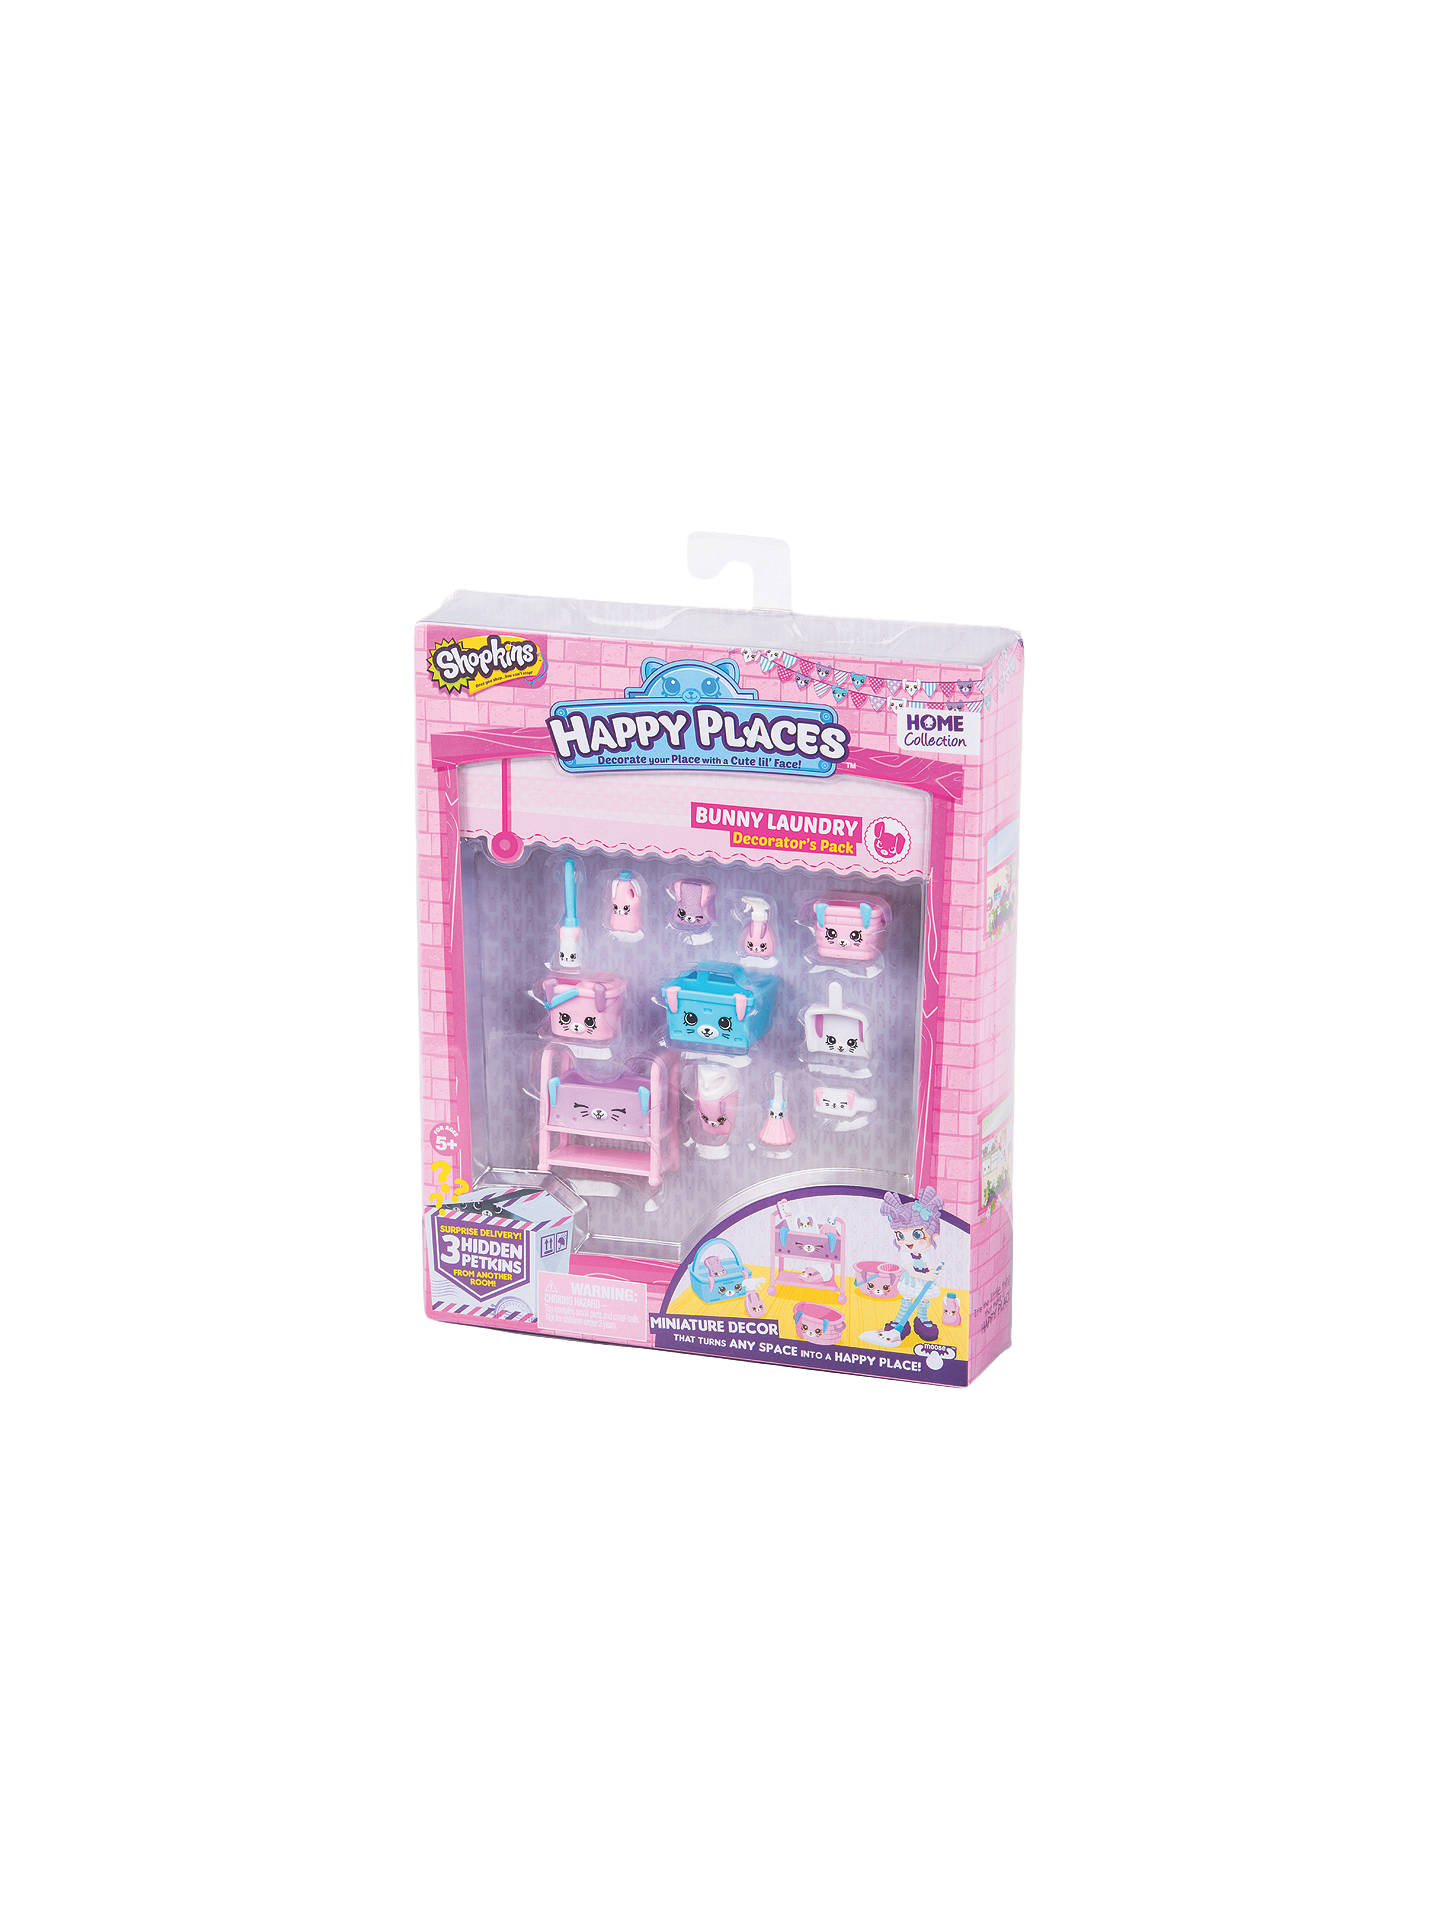 Shopkins happy places bunny laundry decorator 39 s pack at - John lewis shopkins ...